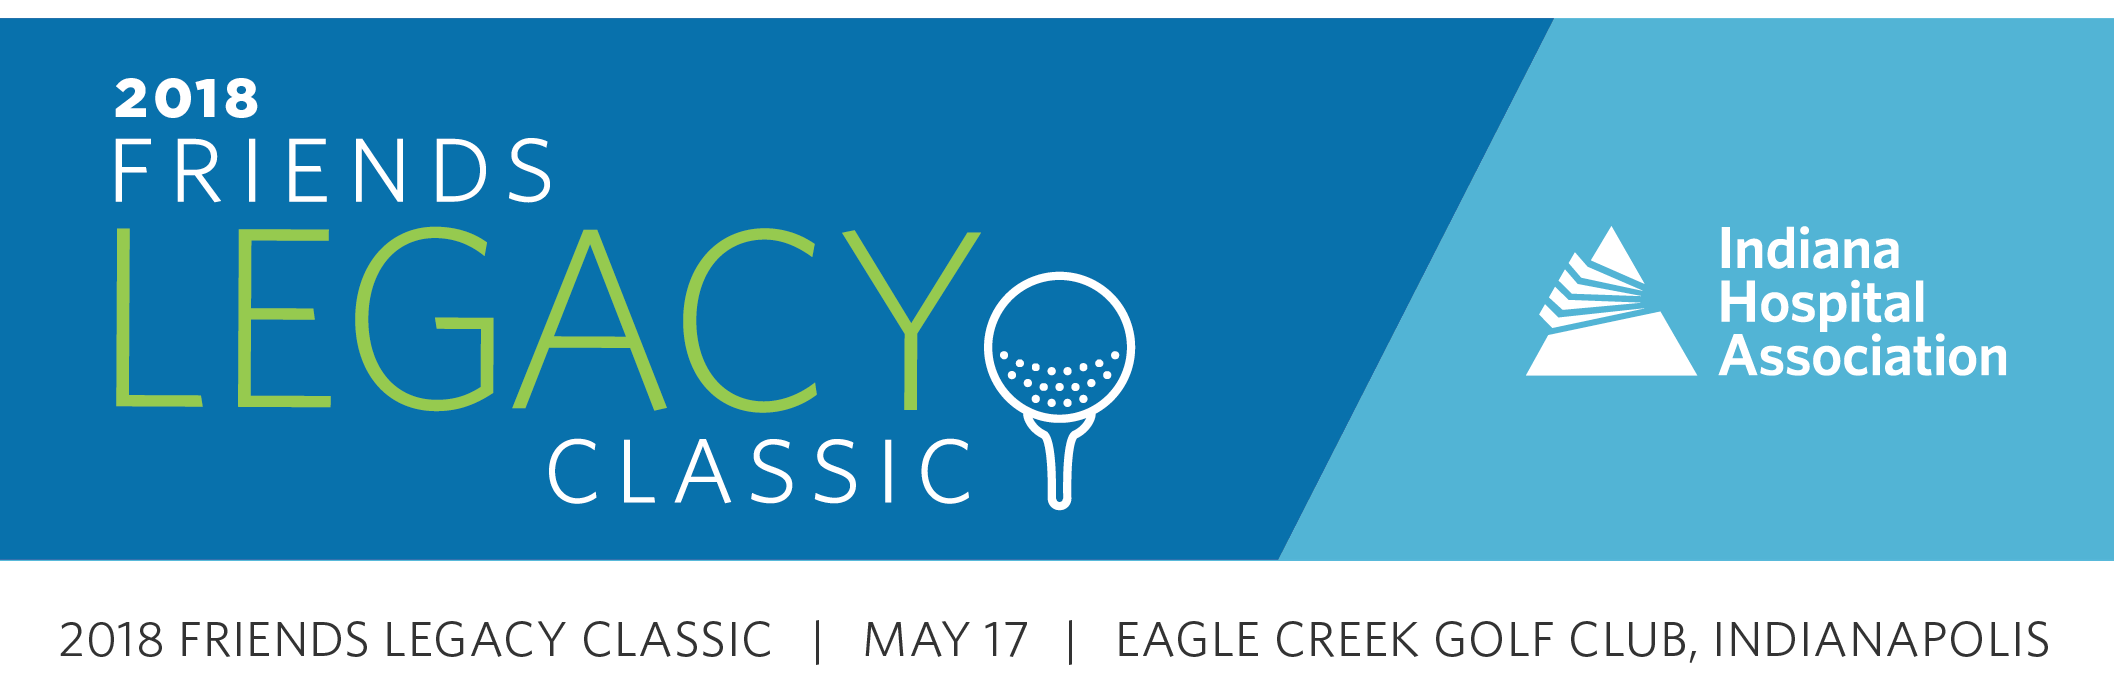 2018-LegacyClassic-Header3 (002).png